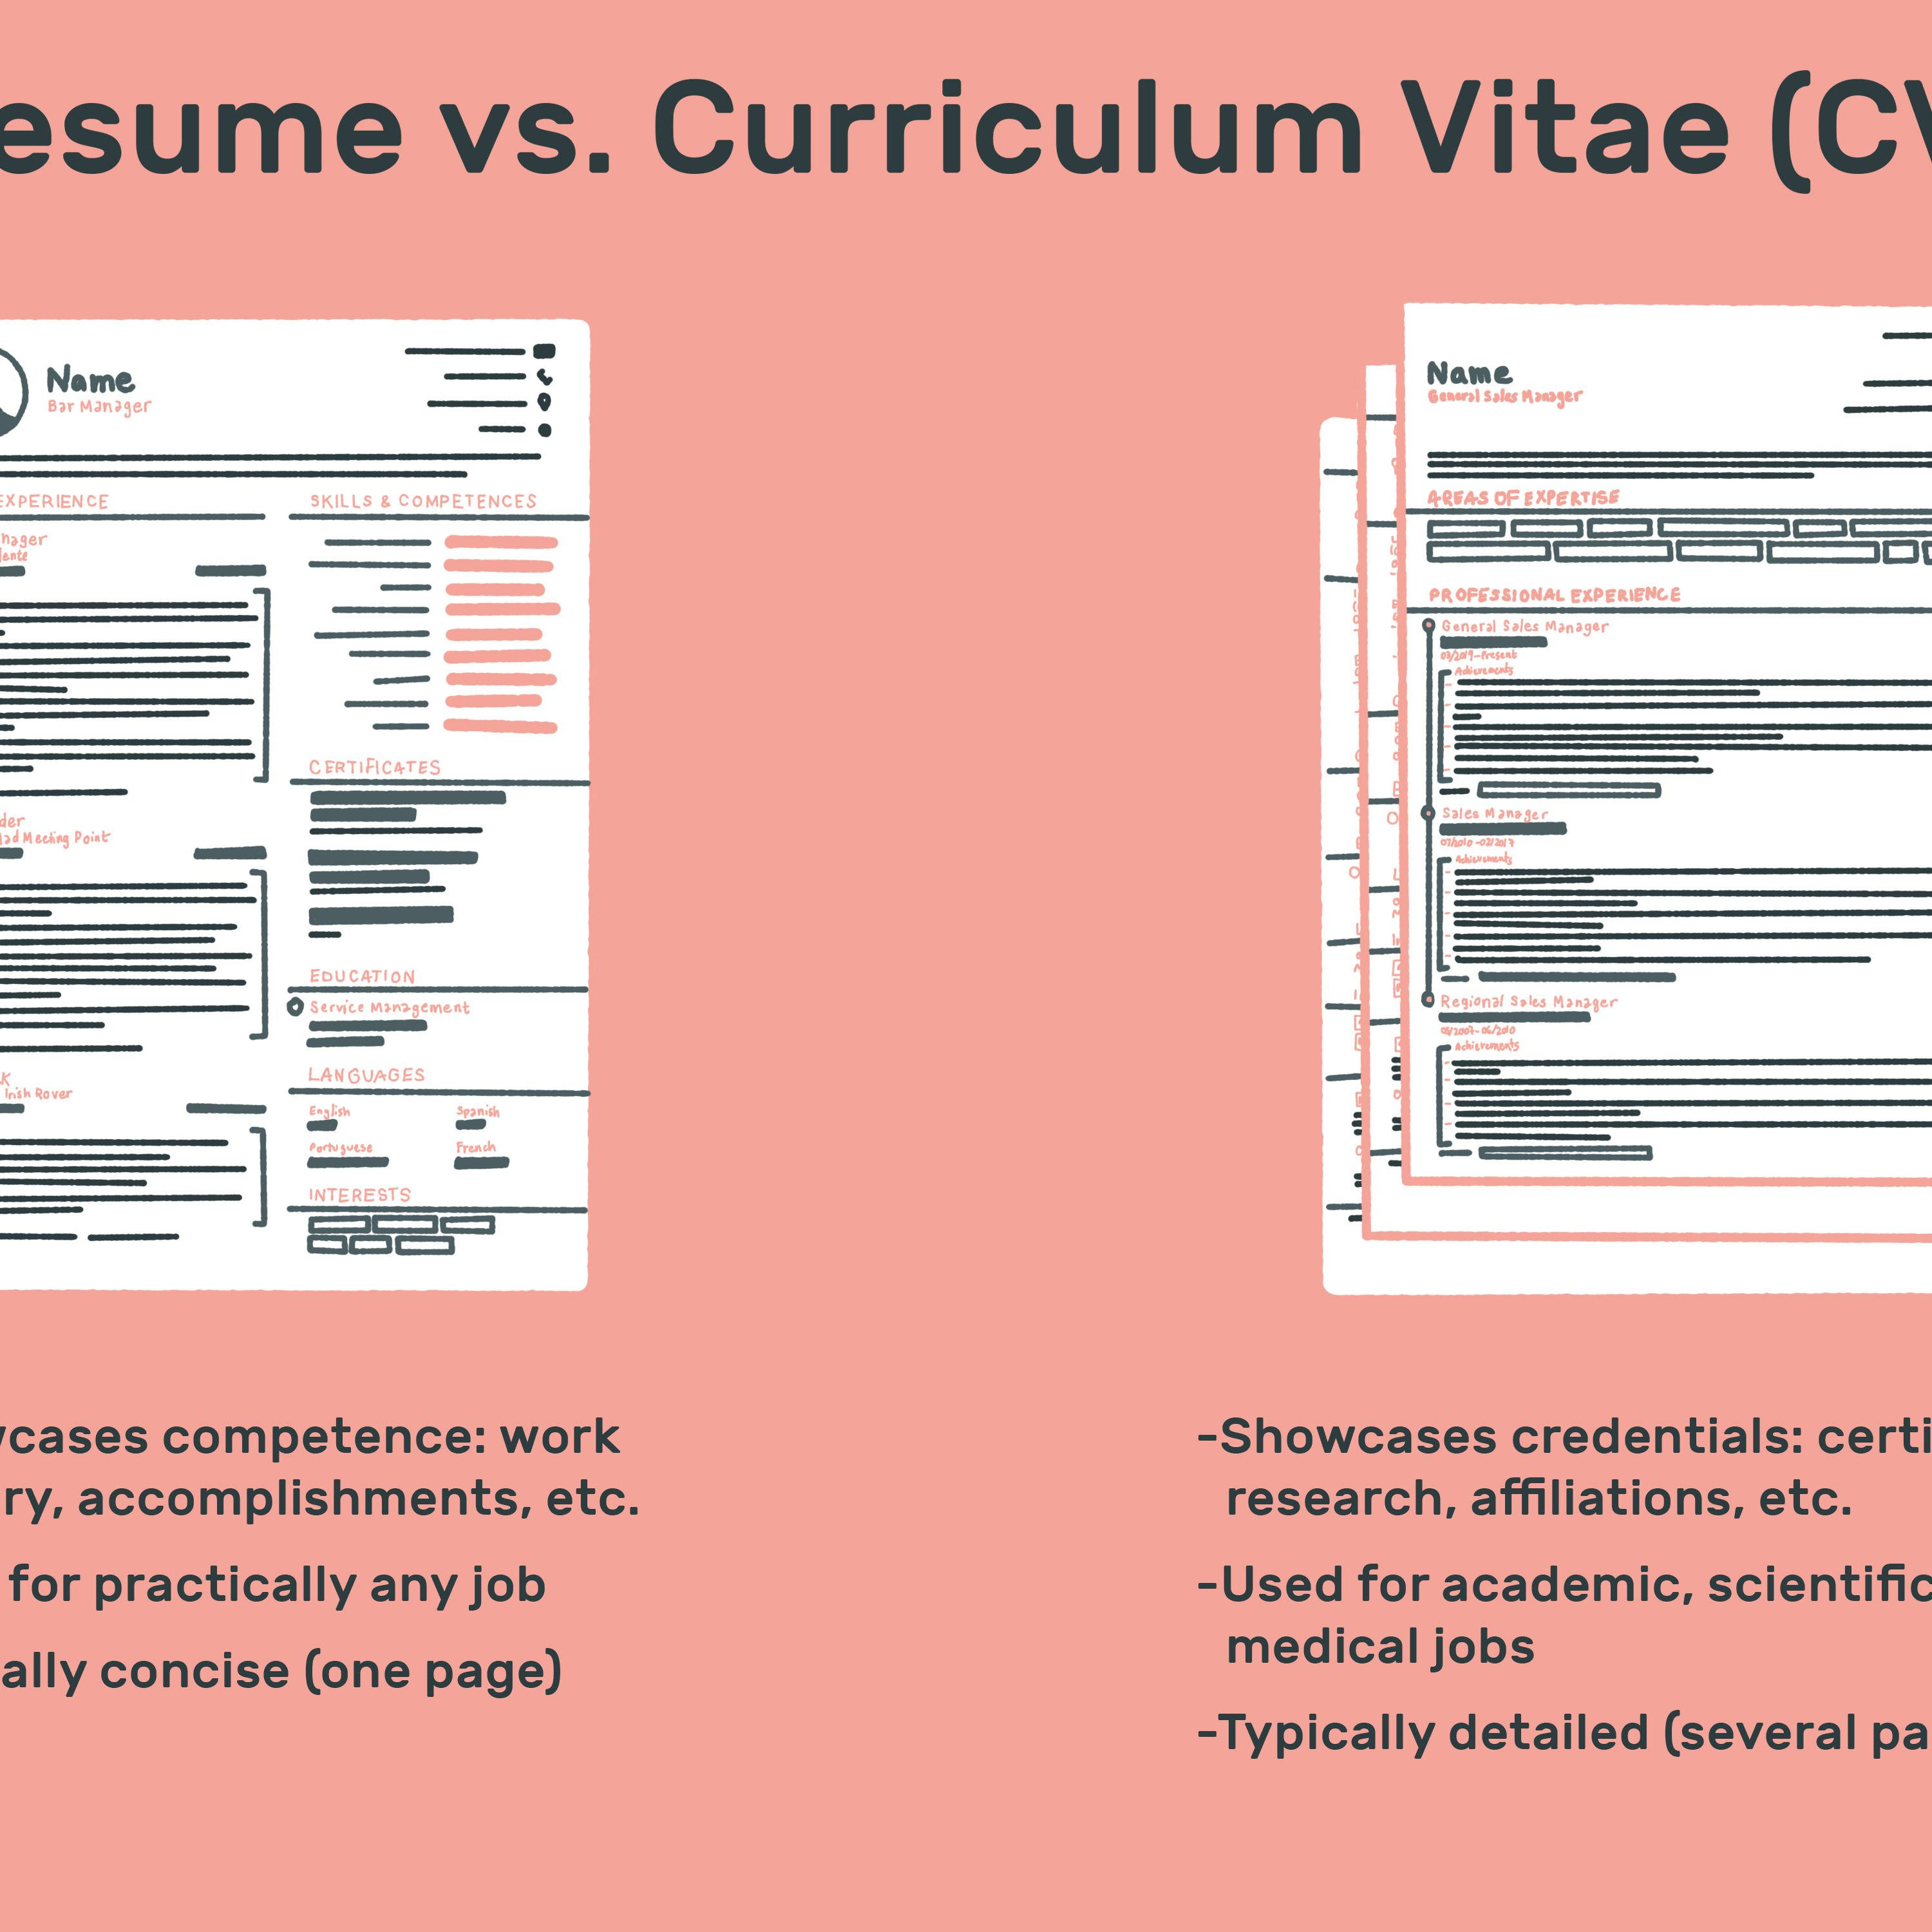 The Difference Between a Resume and a Curriculum Vitae